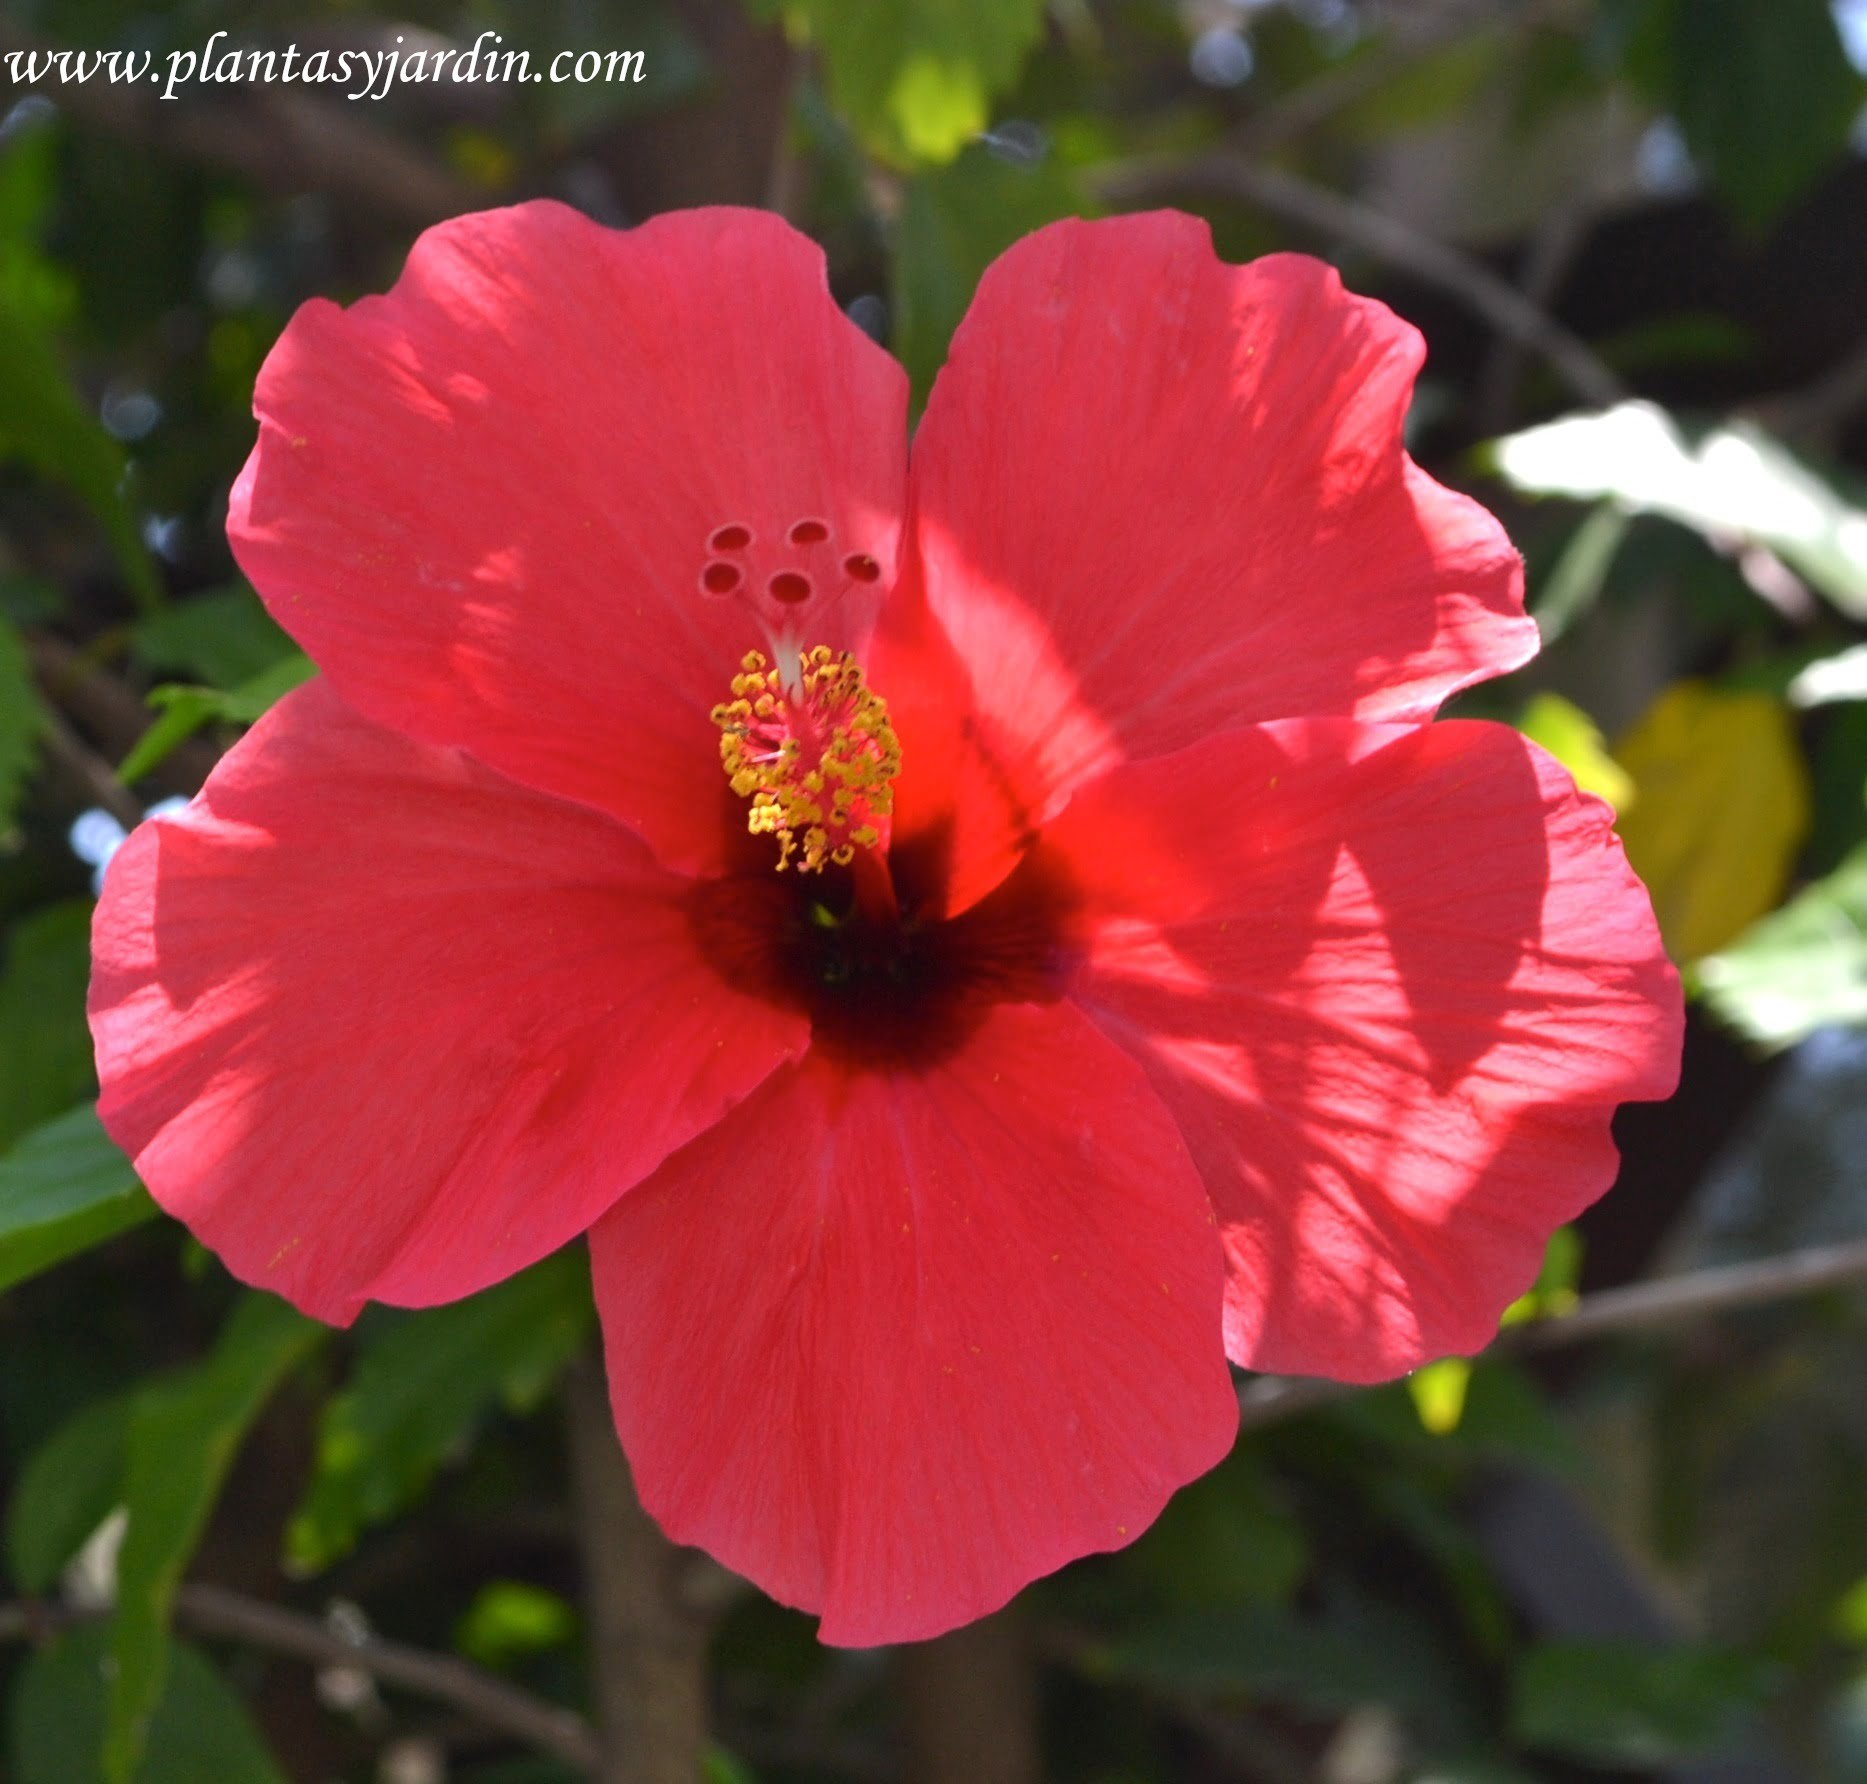 gumamela hibiscus rosa sinensin linn flowers as an anti inflammatory ointment Gumamela is a shrub that grows from one meter up to 4 meters high, also known as: hibiscus, china rose and shoeflower the gumamela flower comes in many different colors: red, yellow, orange, white, purple, pink and other color combinations.